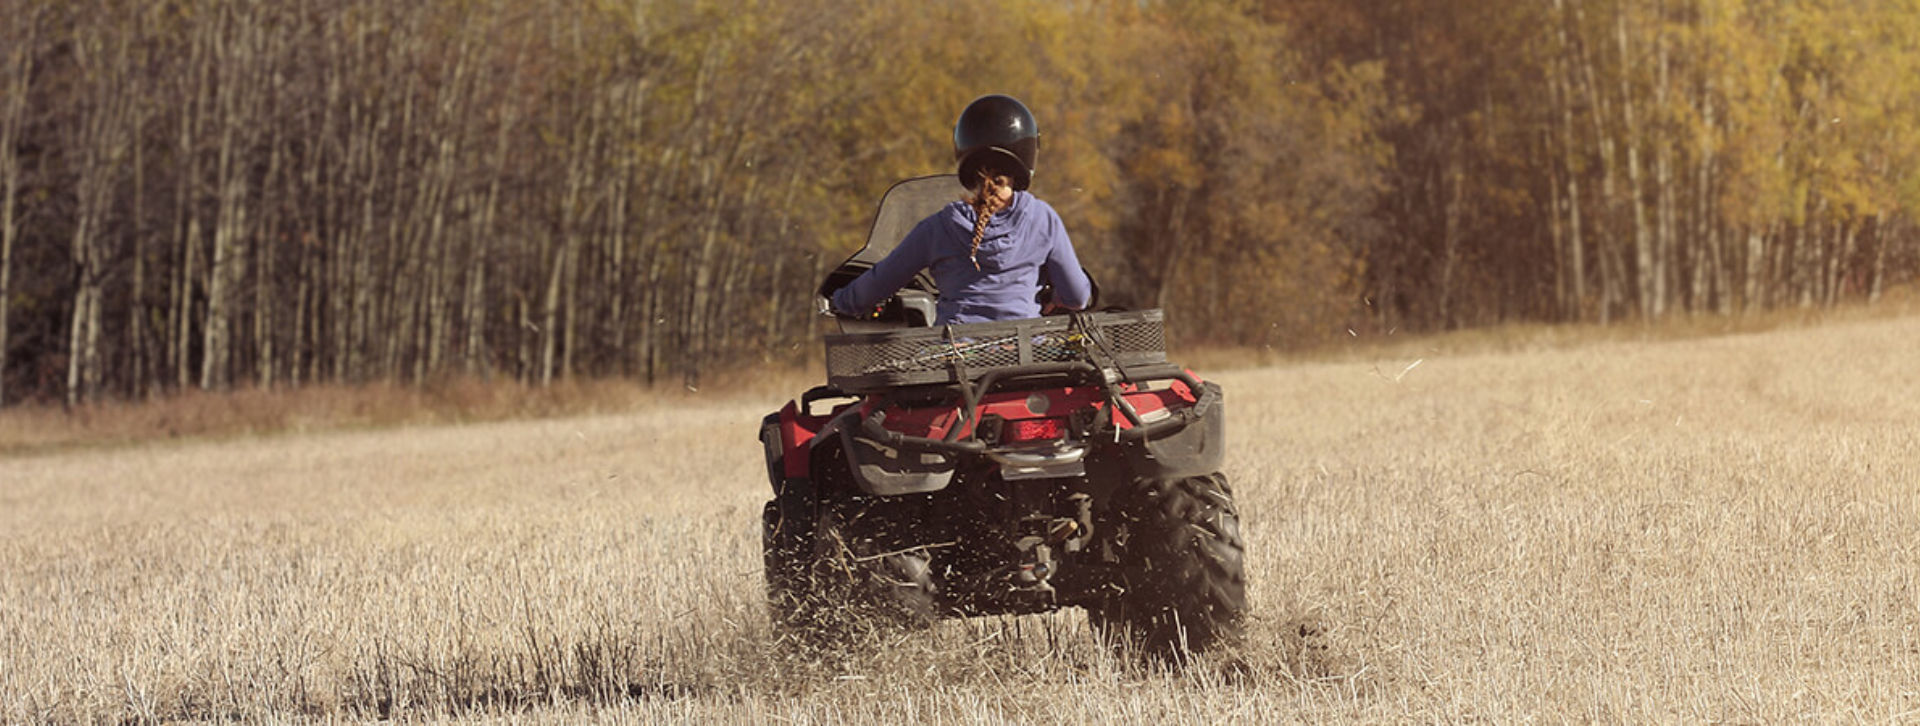 Woman on an ATV